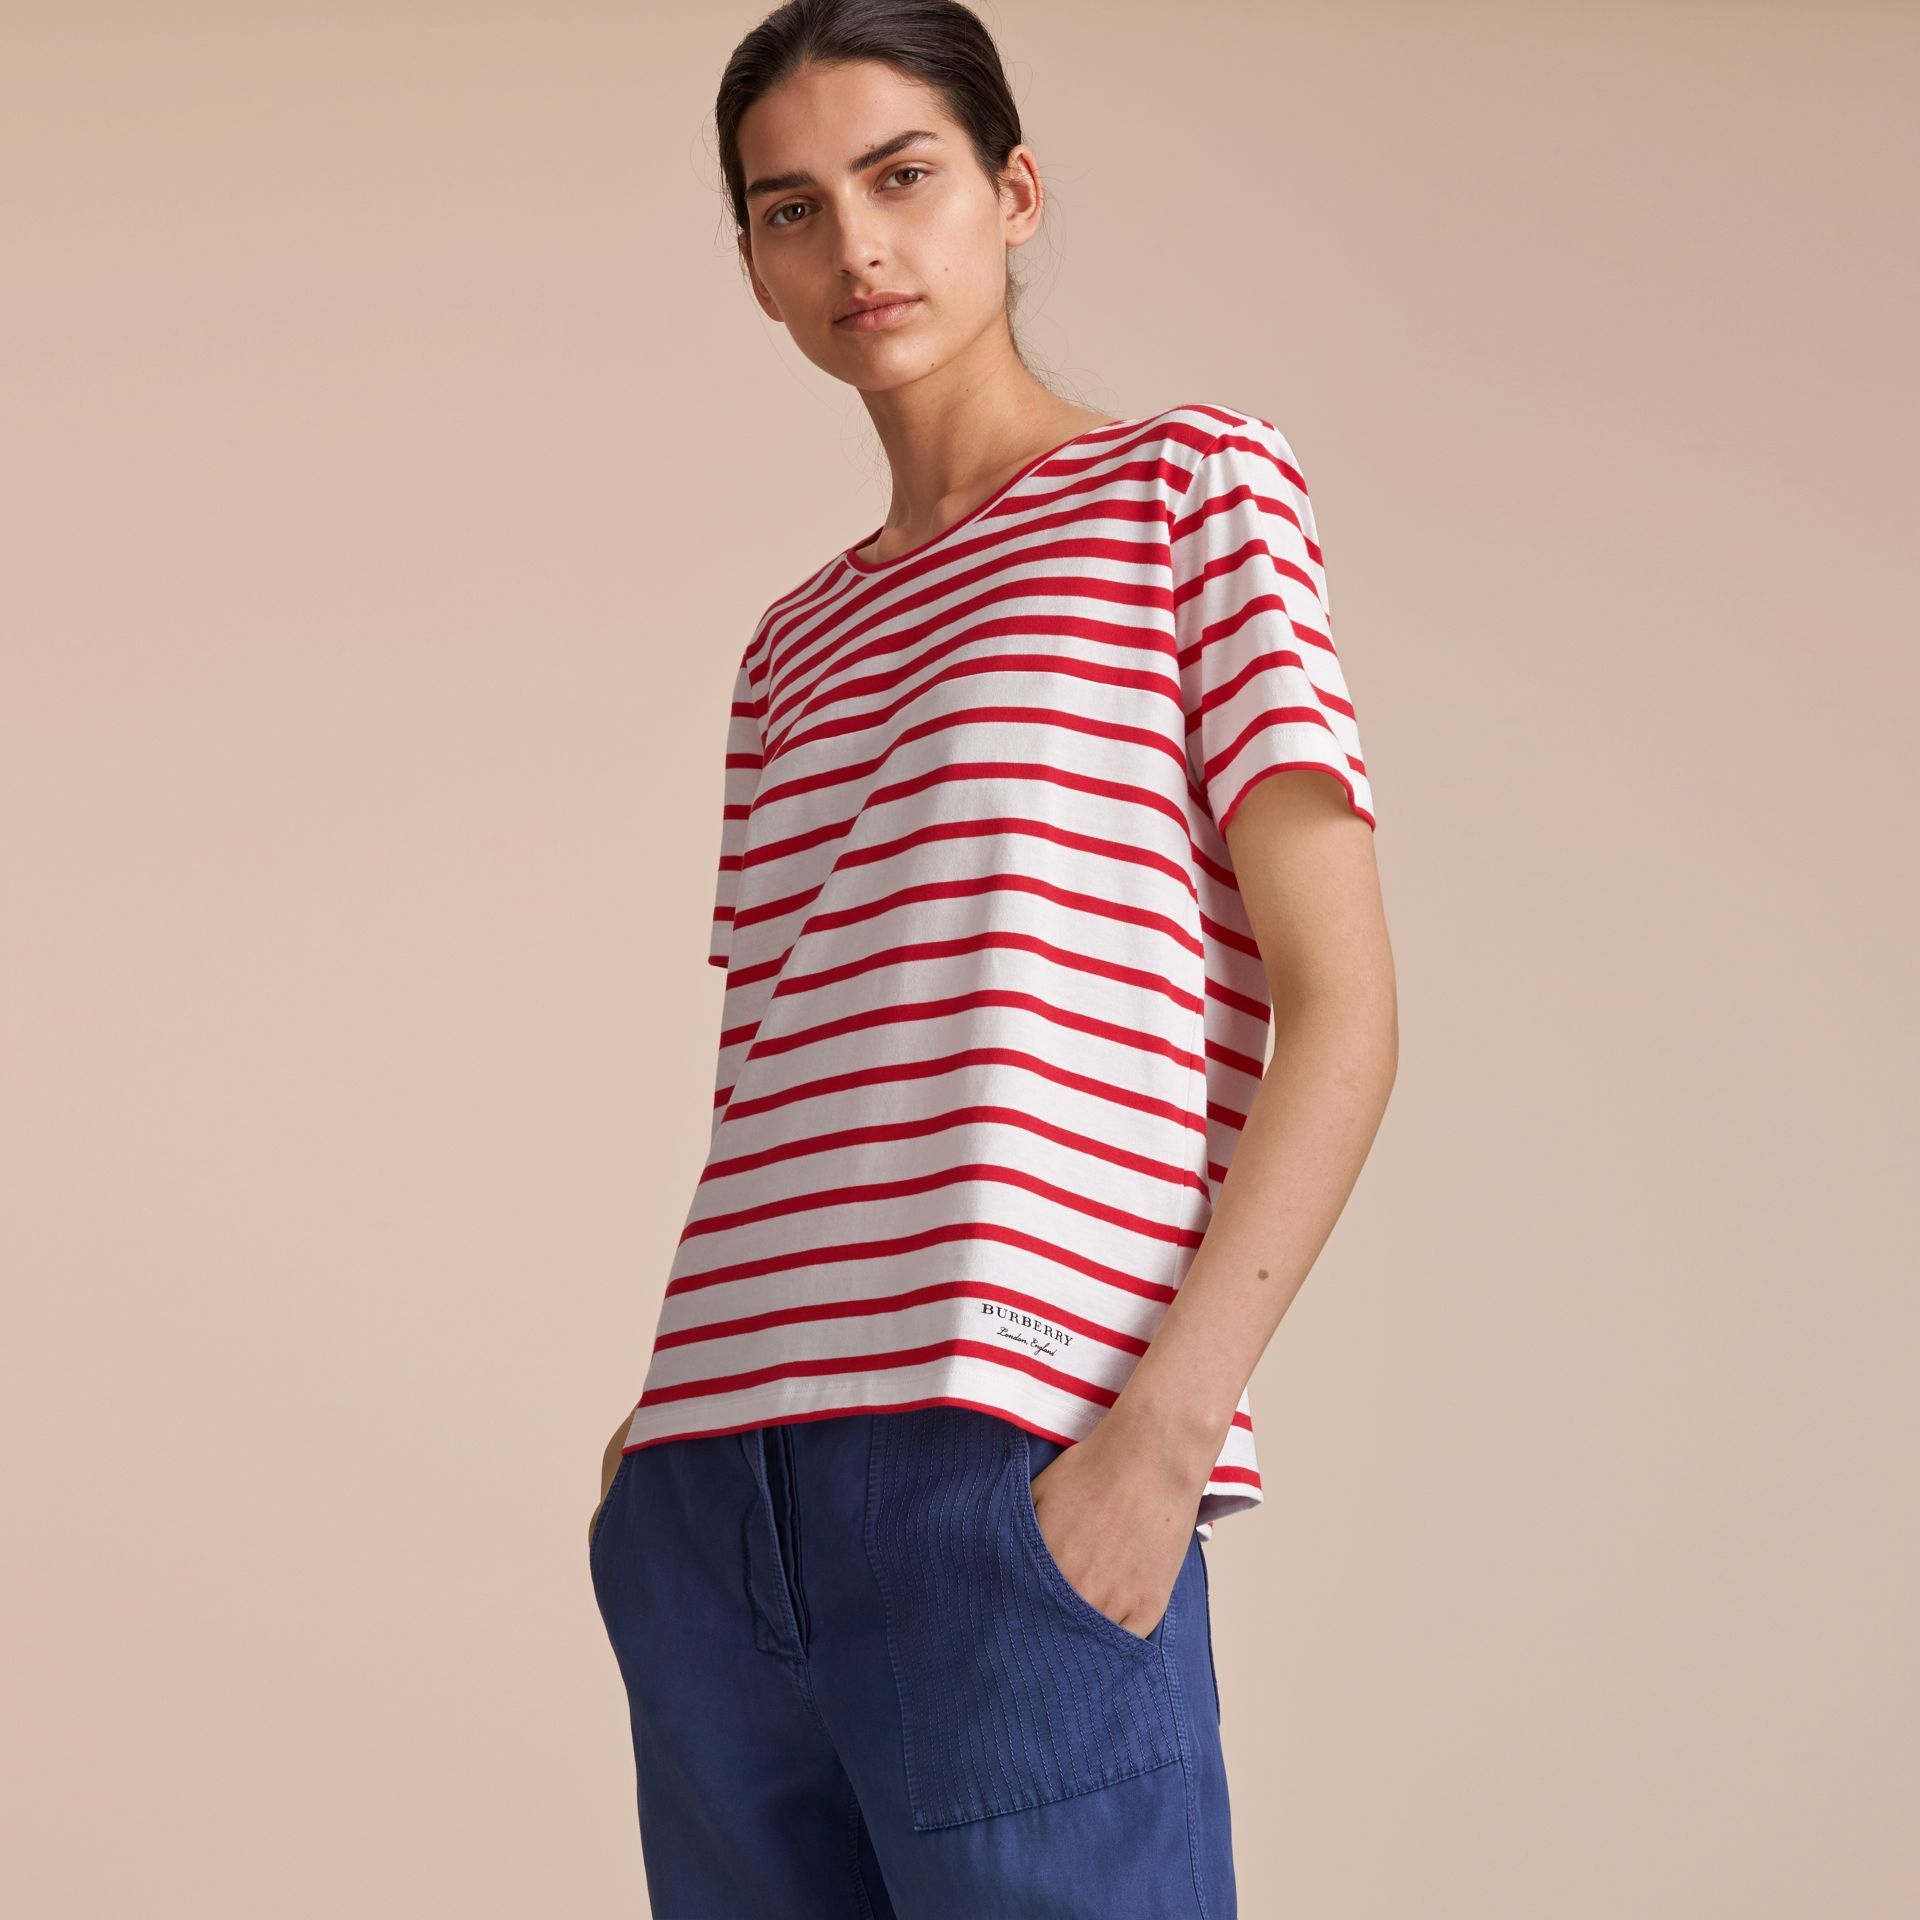 Breton Stripe Cotton T-shirt in Military Red/white - Women | Burberry - gallery image 6